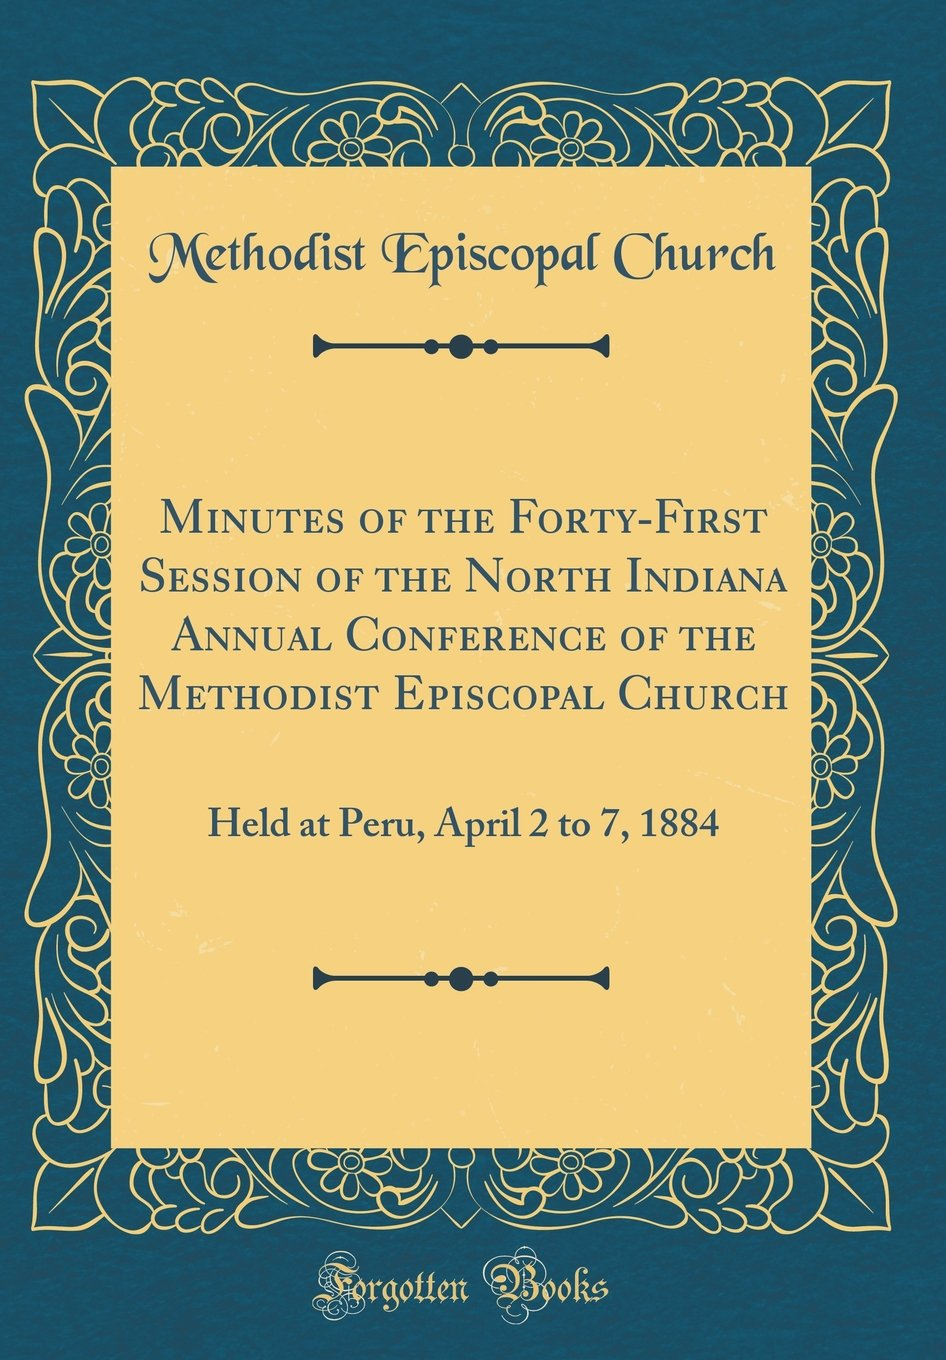 Download Minutes of the Forty-First Session of the North Indiana Annual Conference of the Methodist Episcopal Church: Held at Peru, April 2 to 7, 1884 (Classic Reprint) ebook